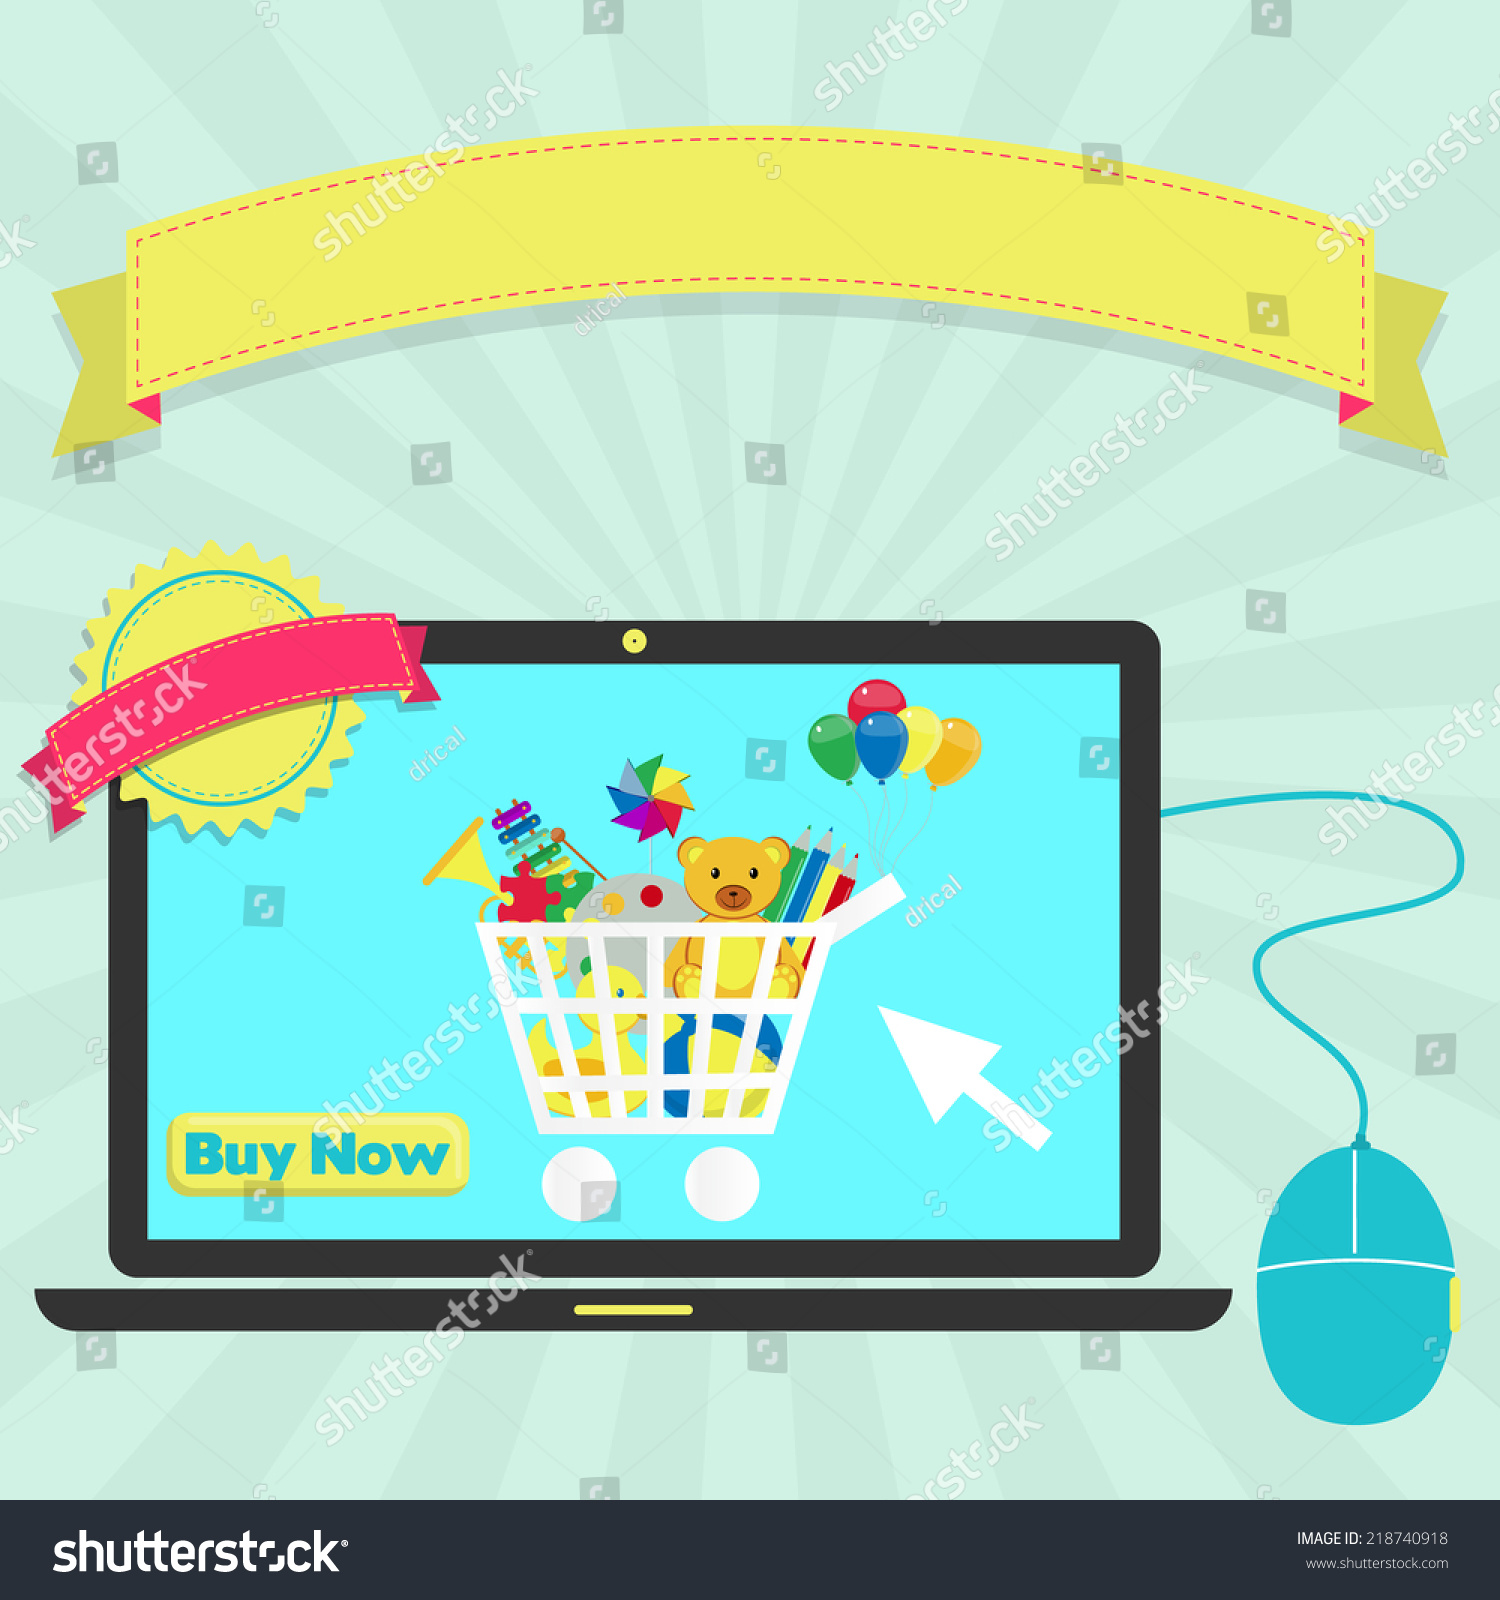 Buy Toys line Through Laptop Buy Stock Vector